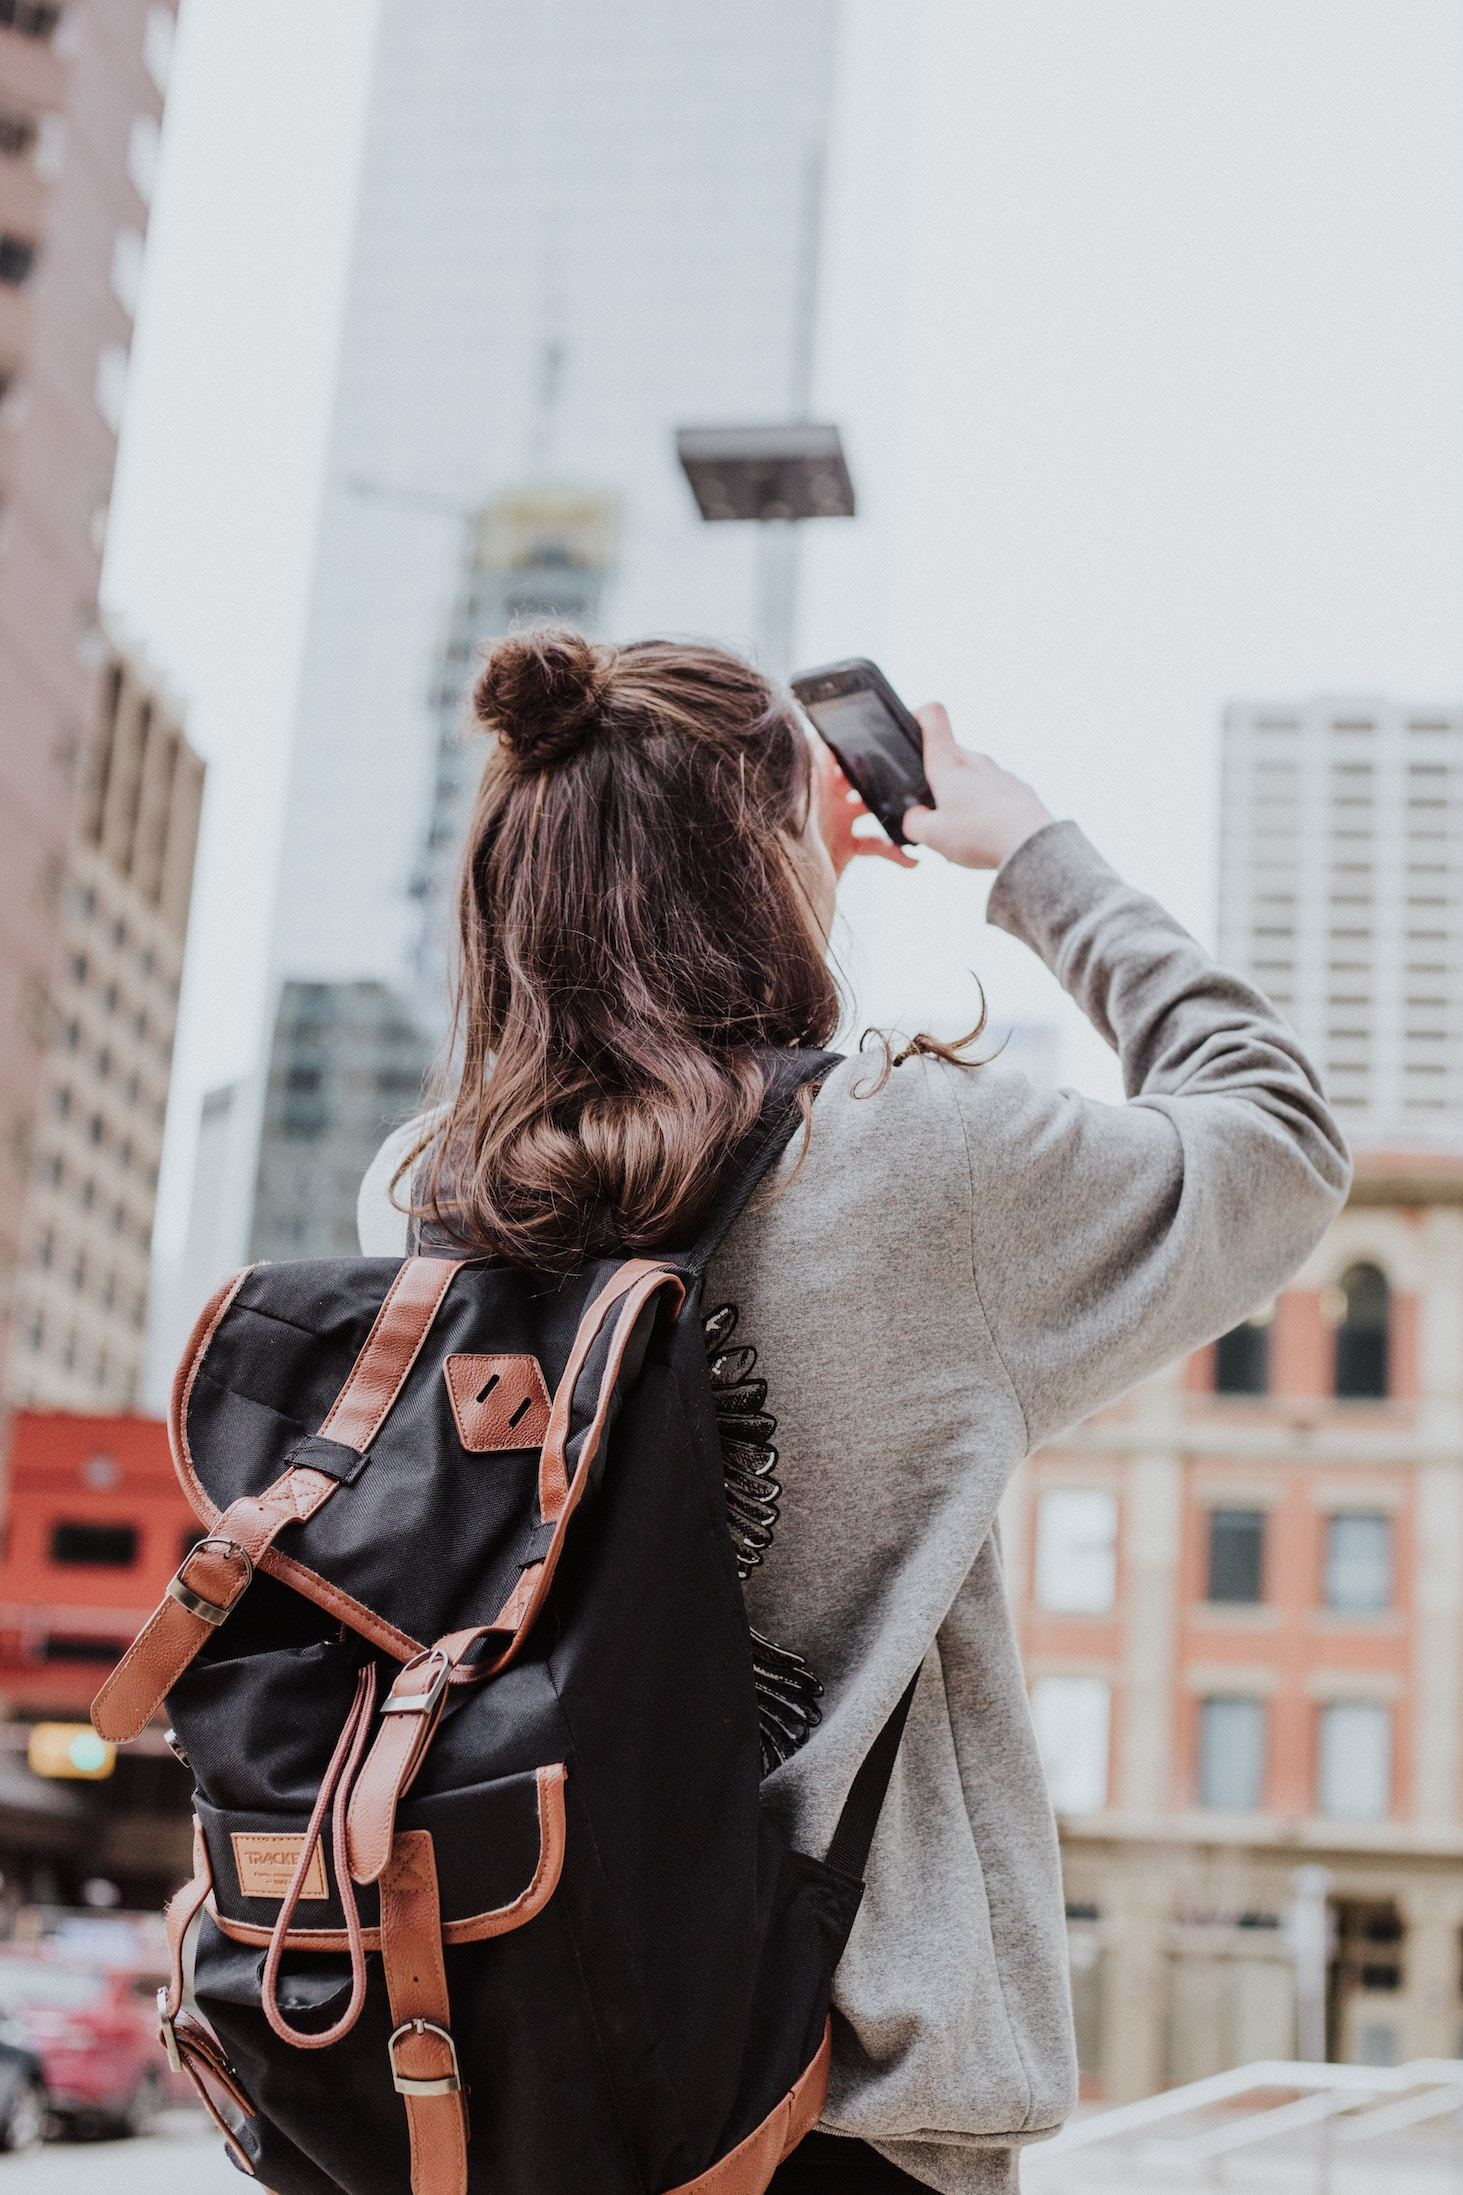 A young woman explores a city, taking pictures with her smartphone